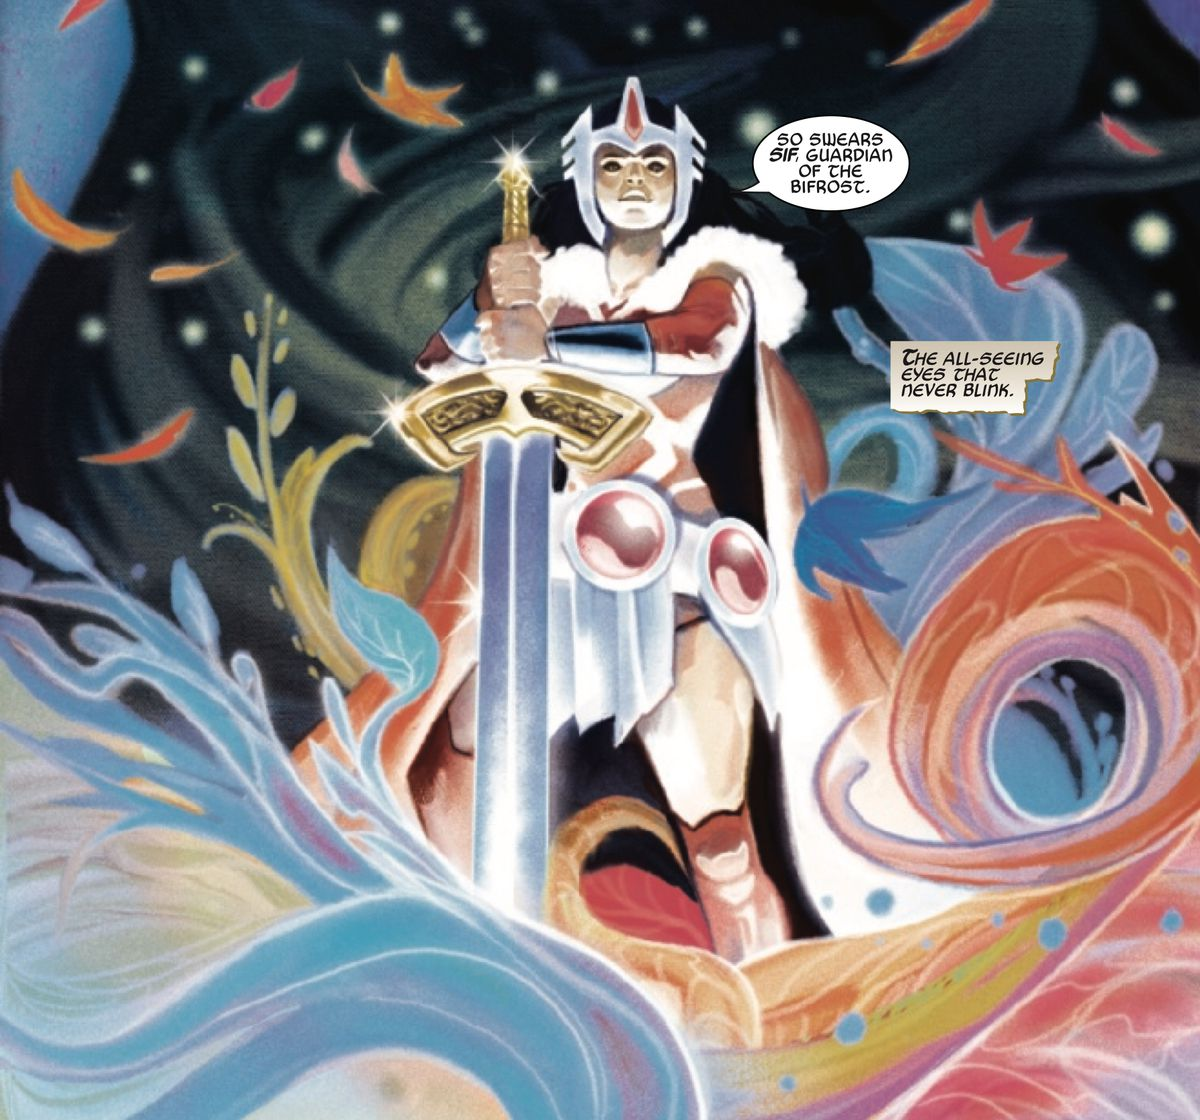 Lady Sif stands on the bifrost with the sword of Heimdall, in King Thor #4, Marvel Comics (2019).